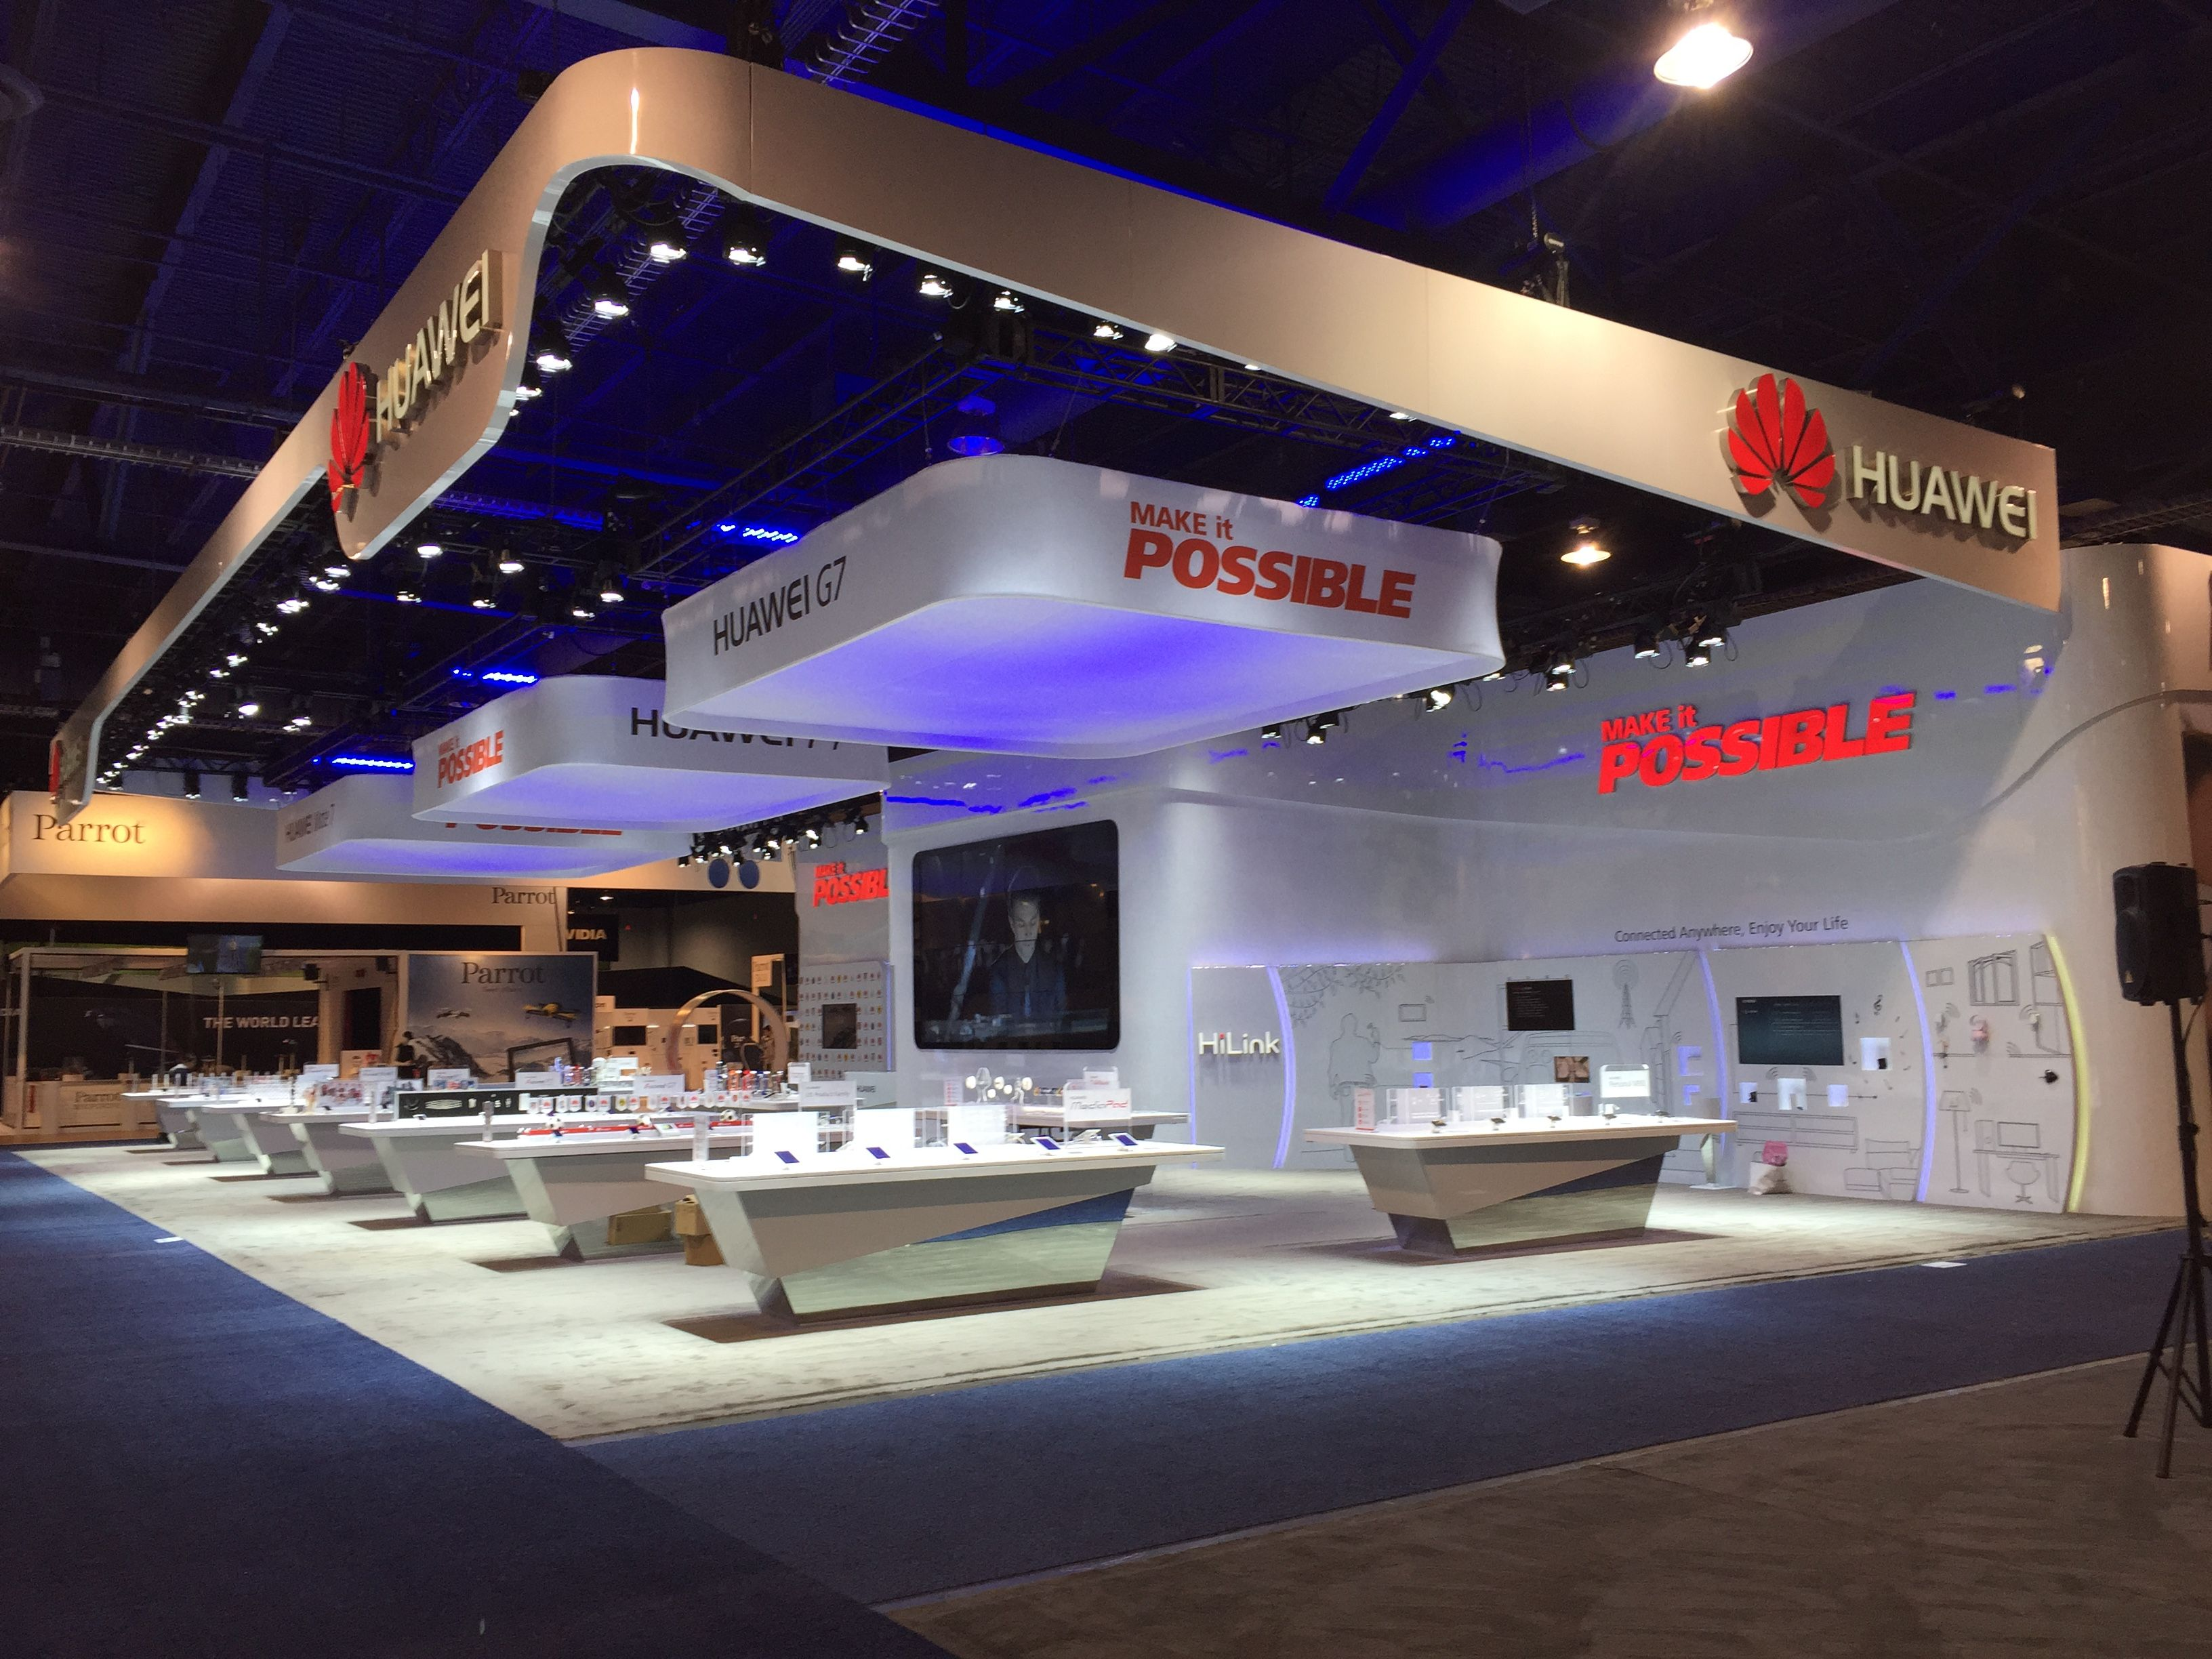 Huawei At CES2015 And MWC 2015 Achieved Momentous